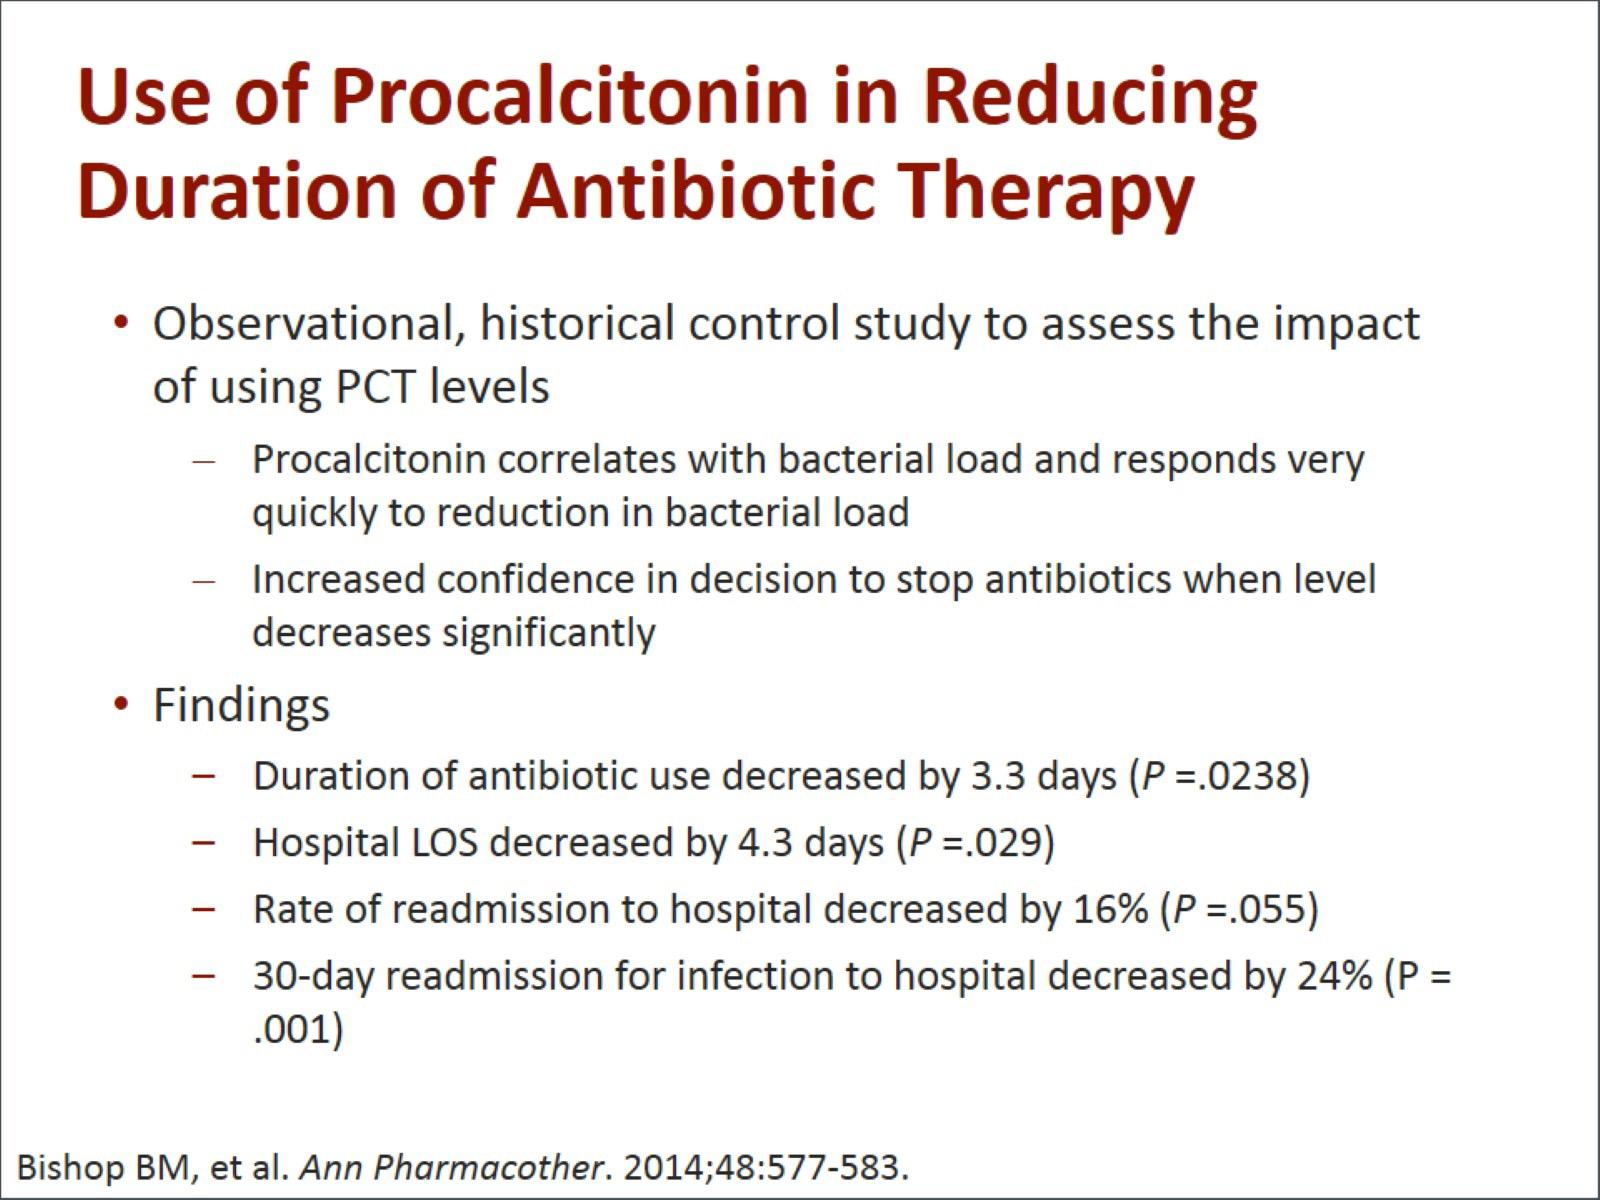 Machine generated alternative text: Use of Procalcitonin in Reducing Duration of Antibiotic Therapy Observational, historical control study to assess the impact of using PCT levels Procalcitonin correlates with bacterial load and responds very quickly to reduction in bacterial load Increased confidence in decision to stop antibiotics when level decreases significantly • Findings Duration of antibiotic use decreased by 3.3 days (P =.0238) Hospital LOS decreased by 4.3 days (P =.029) Rate of readmission to hospital decreased by 16% (P =.055) 30-day readmission for infection to hospital decreased by 24% (P = .001) Bishop BM, et al. Ann Pharmacother. 2014;48:577-583.